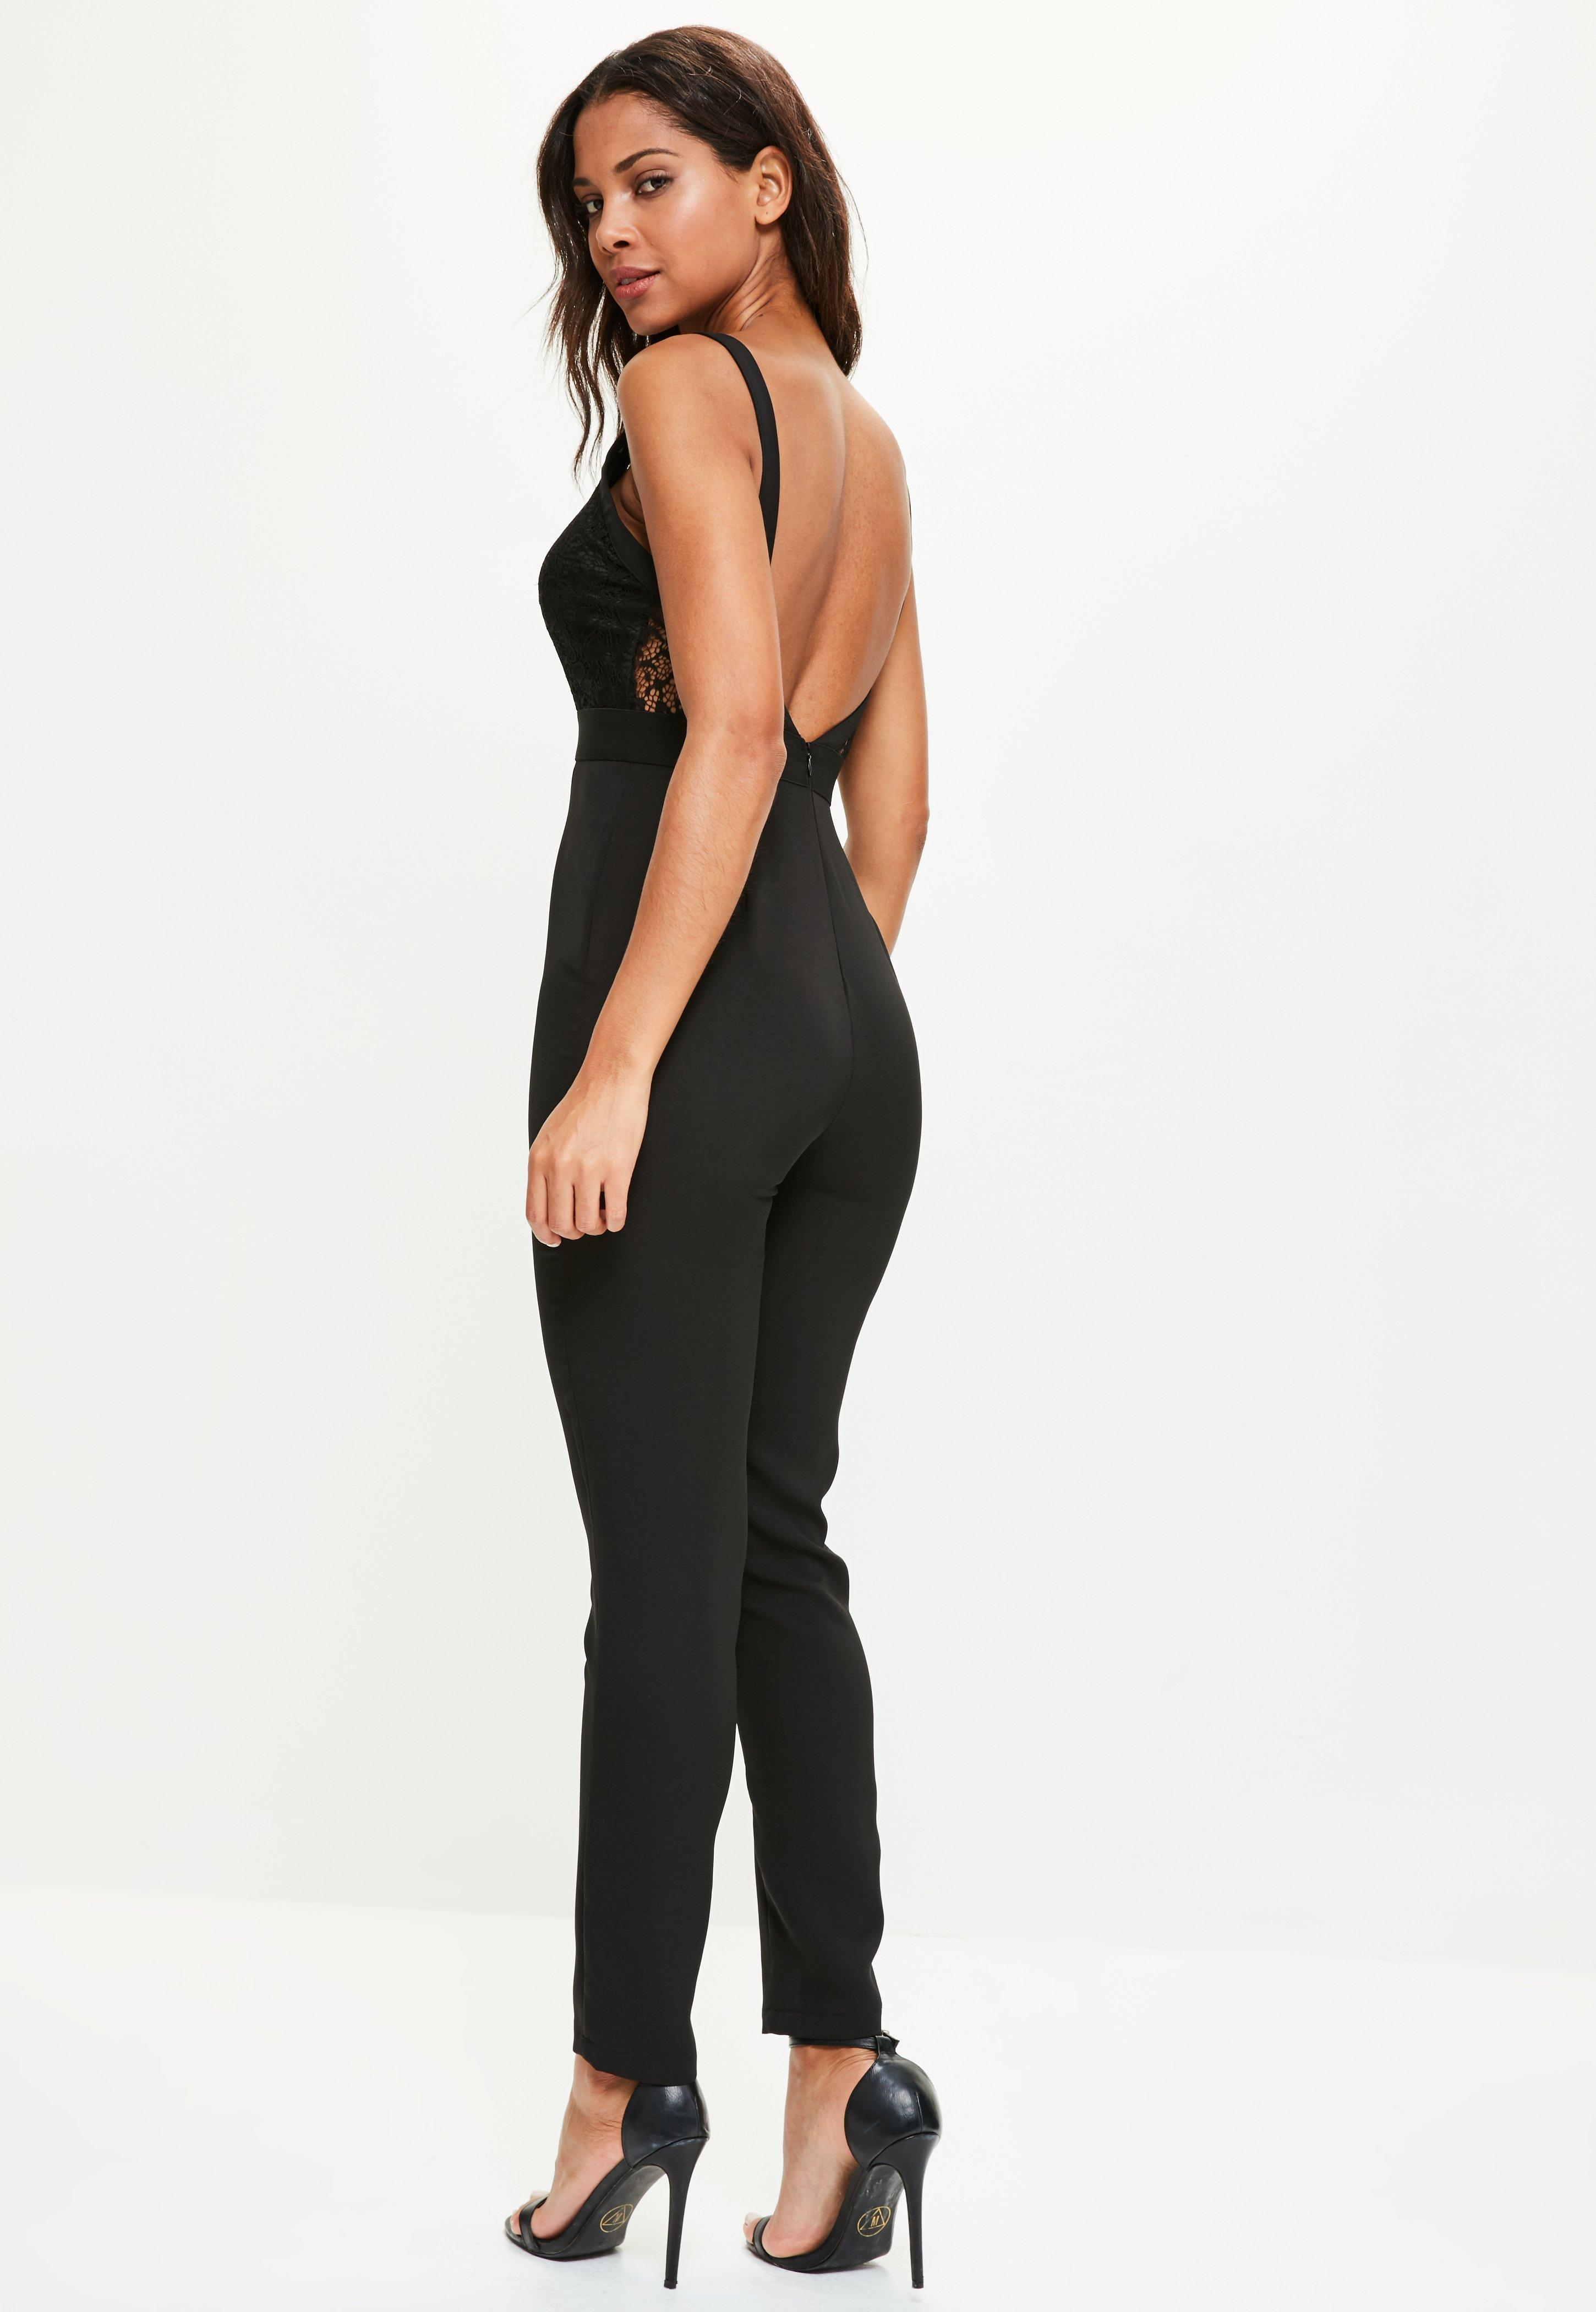 915a32a00f3 Lyst - Missguided Lace Eyelet Harness Jumpsuit Black in Black